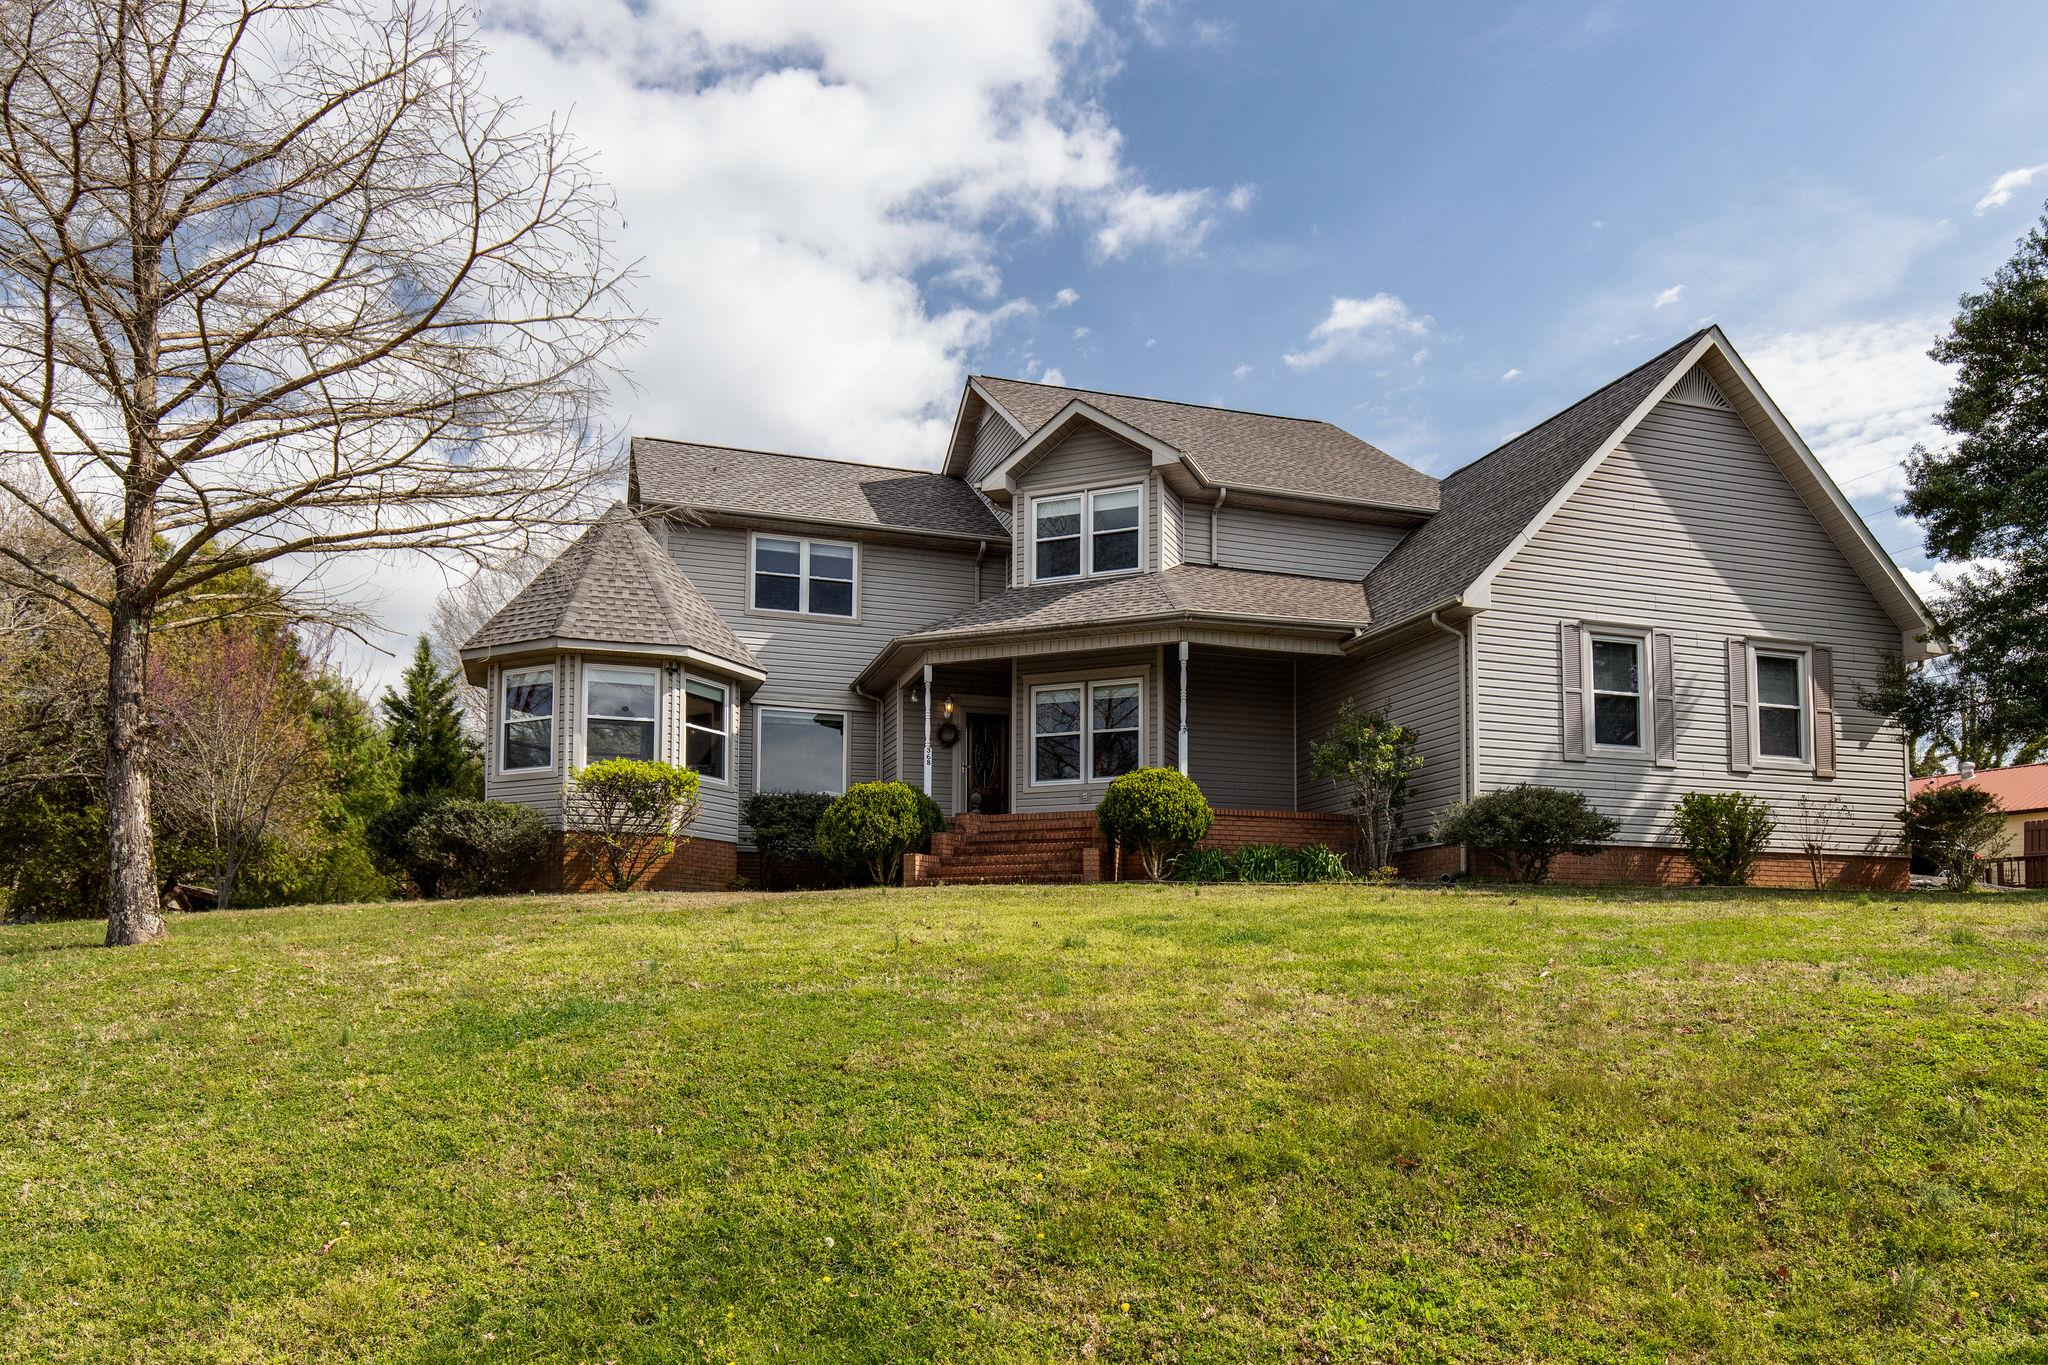 368 Blackberry Hill Rd, Silver Point, TN 38582 - Silver Point, TN real estate listing